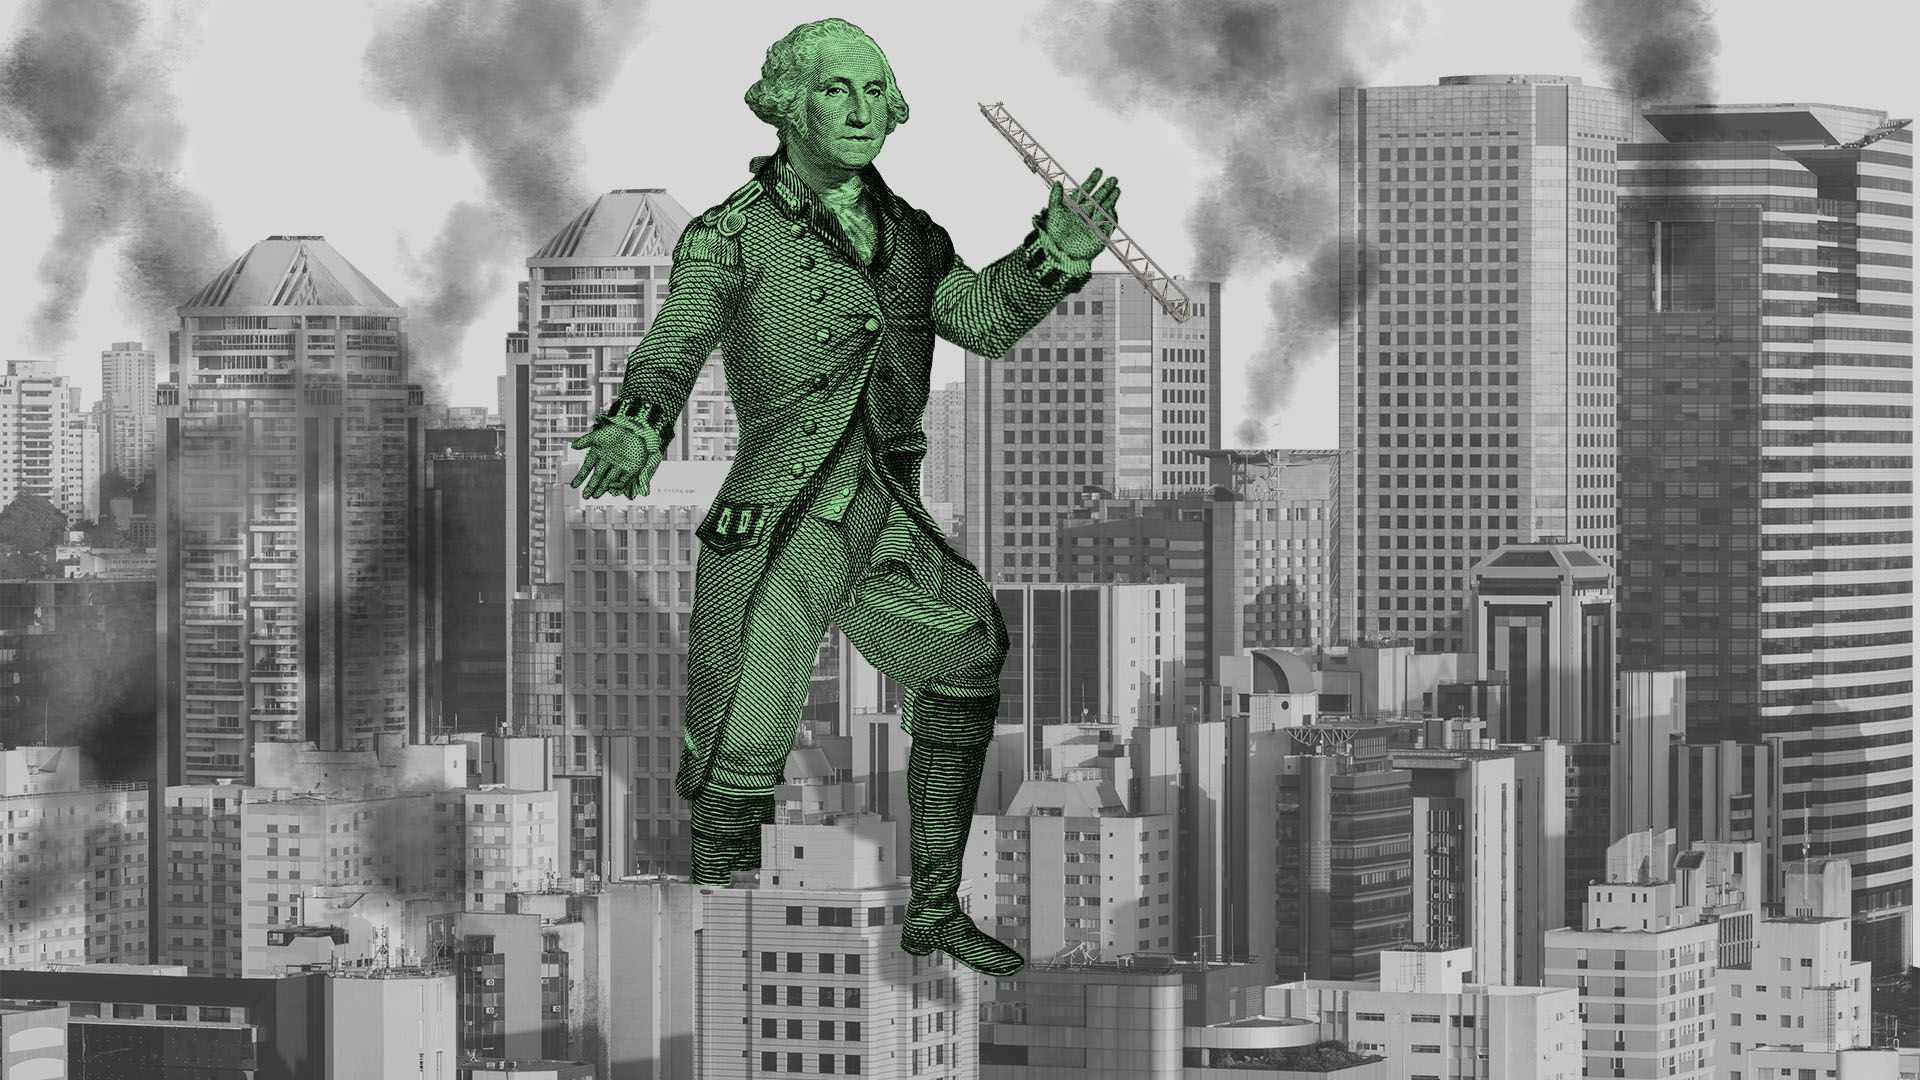 Illustration of giant George Washington stomping through a city